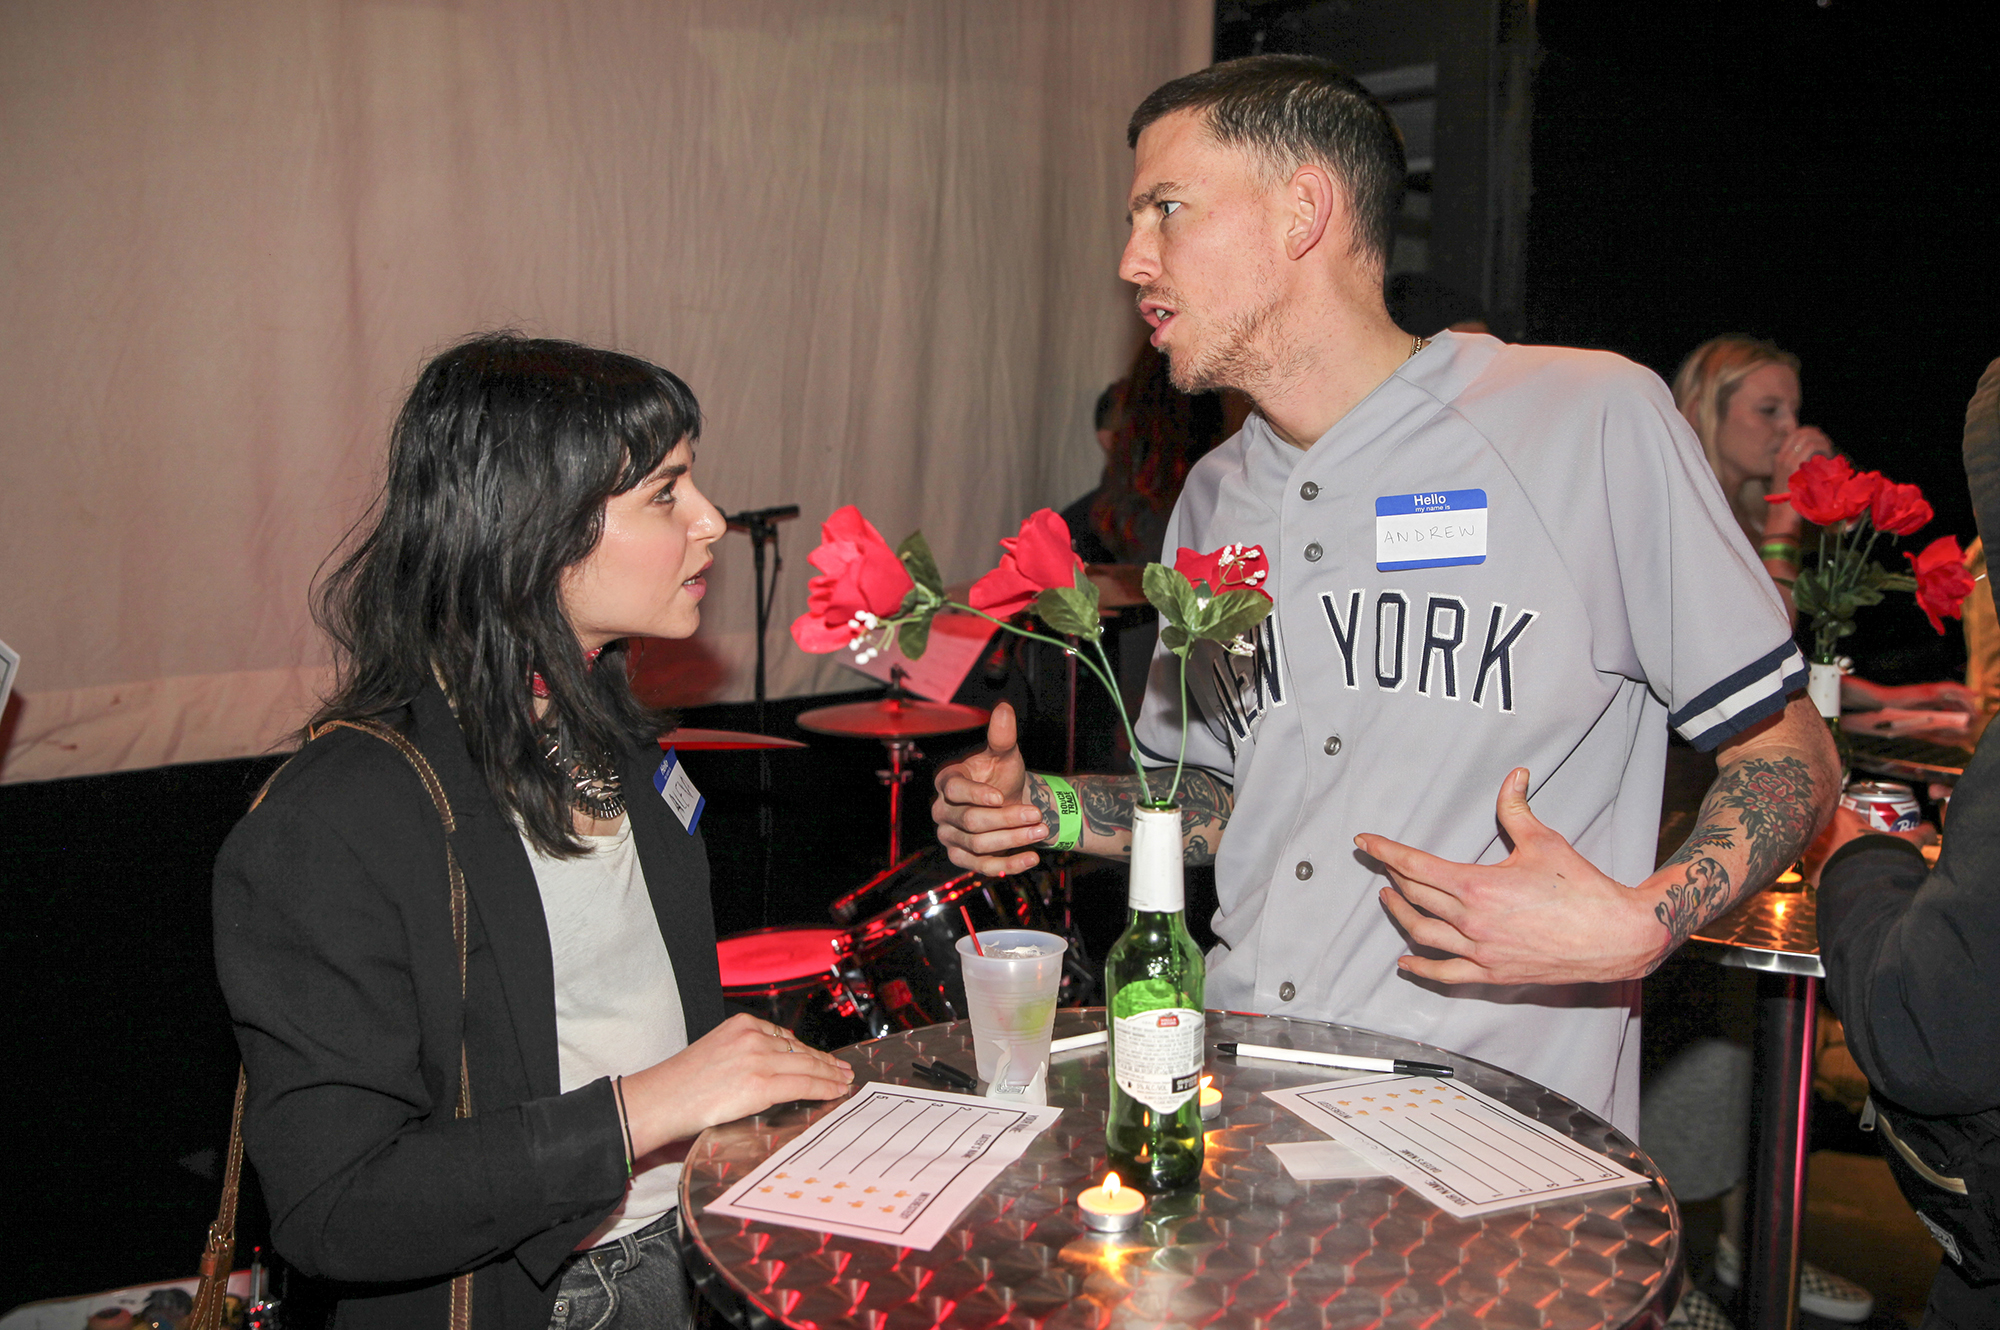 speed dating cardiff 18 Monday - 240918 fck me it's freshers tigertiger cardiff - newport  wednesday - 260918 speed dating event with ditch or date cardiff.